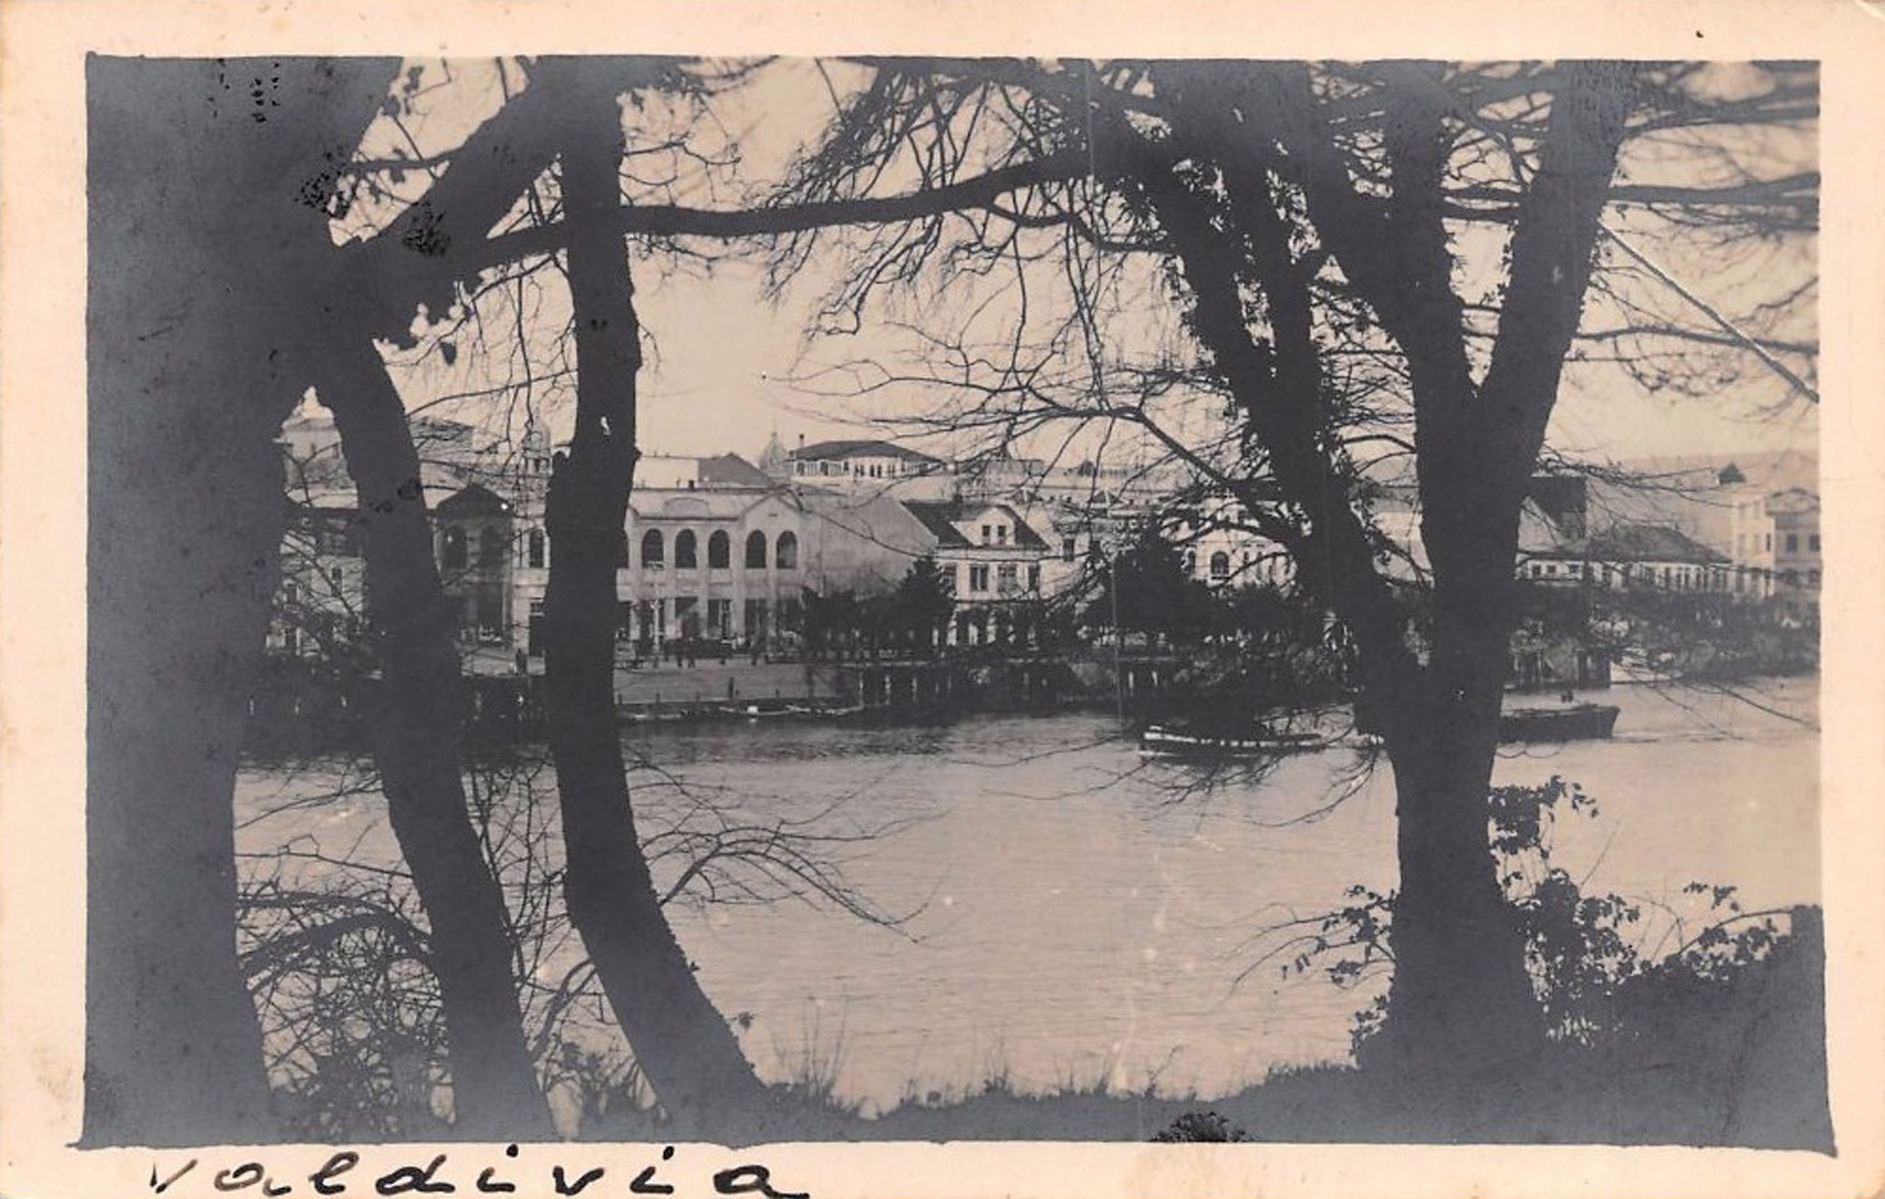 Enterreno - Fotos históricas de chile - fotos antiguas de Chile - Valdivia en 1934